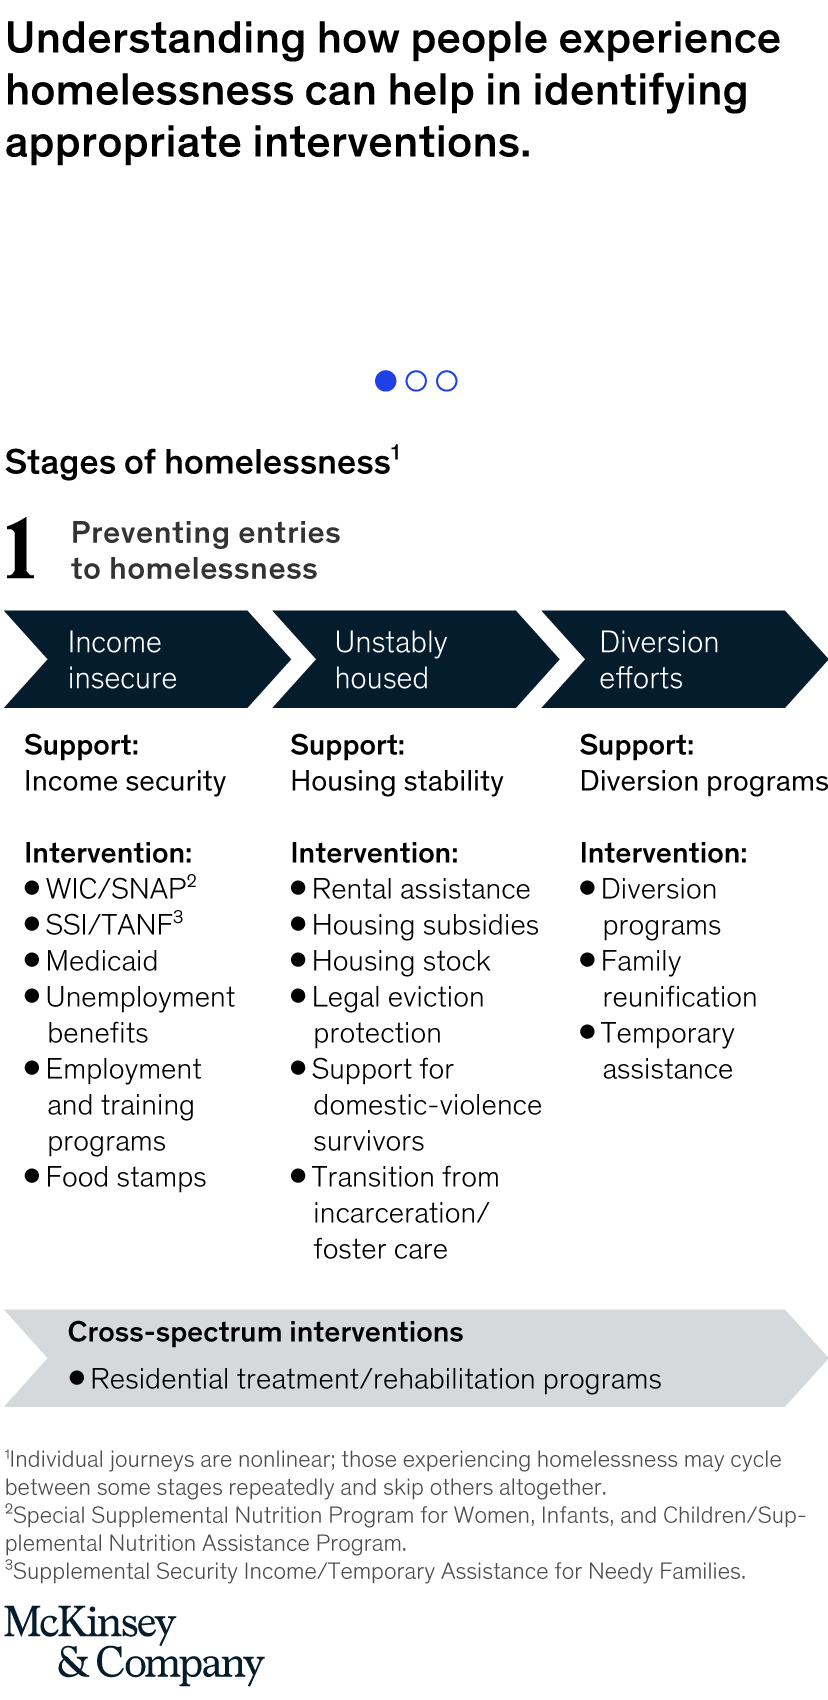 Homelessness in the San Francisco Bay Area: The crisis and a path